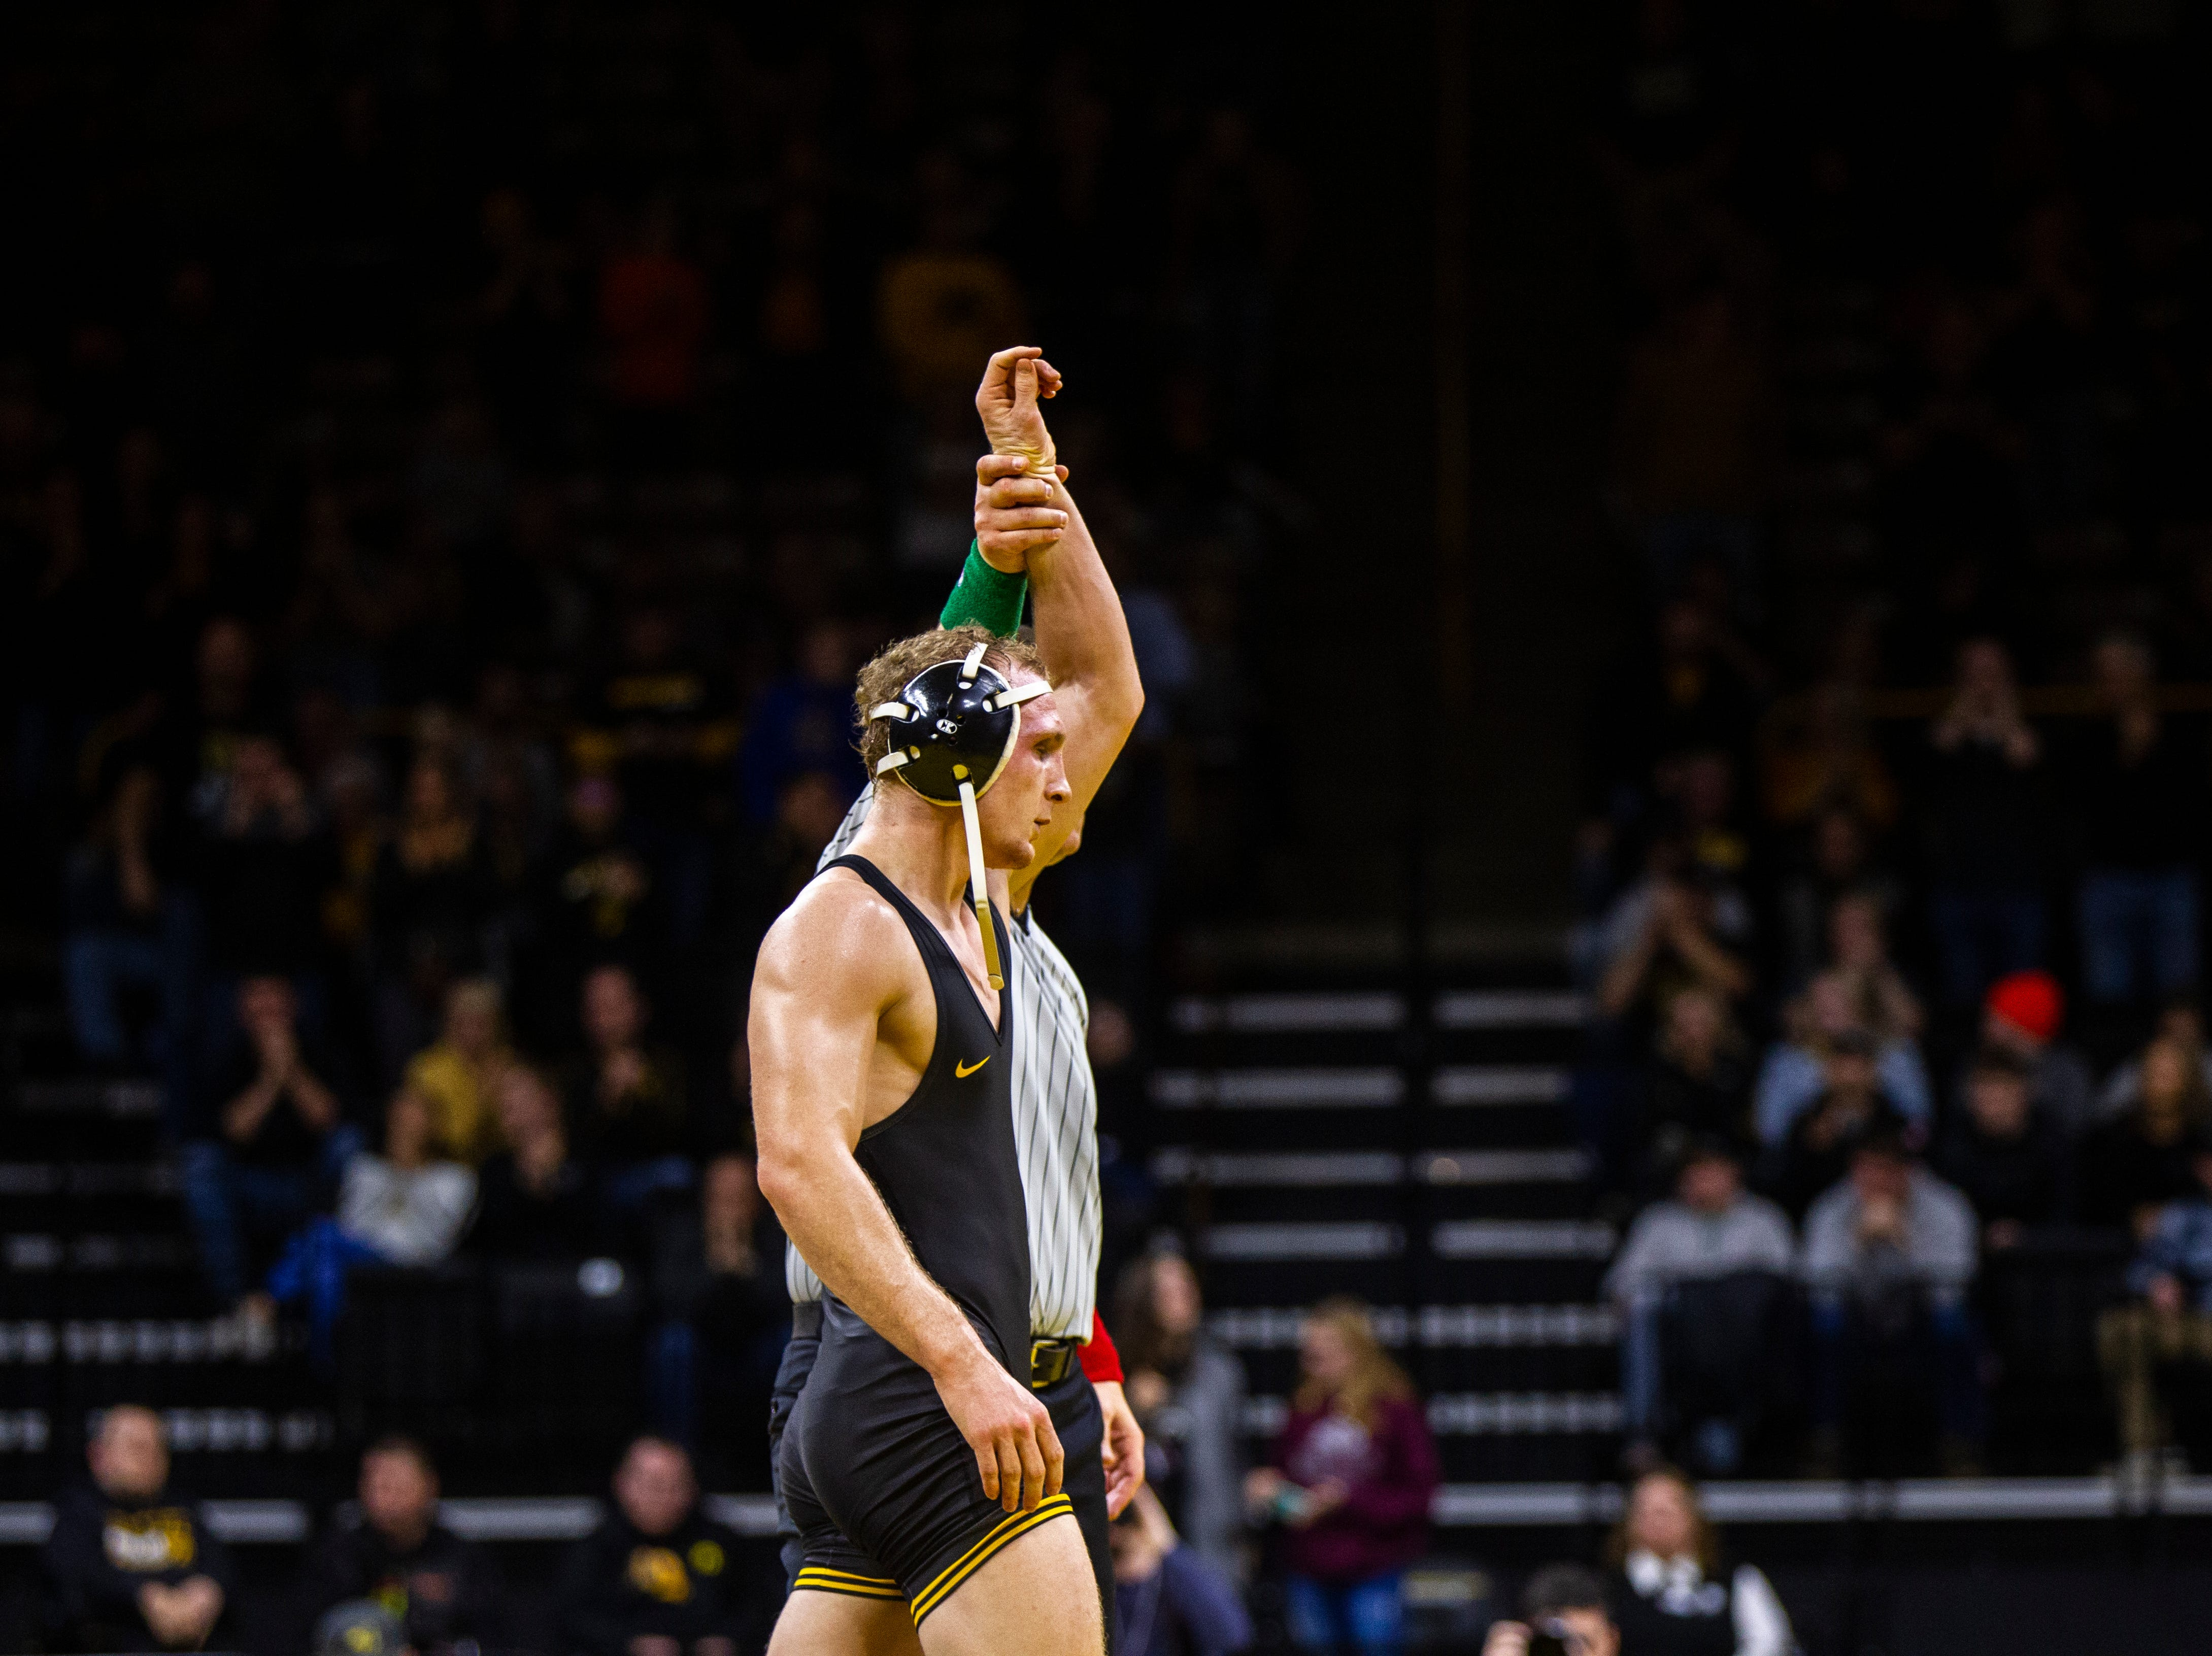 Iowa's Kaleb Young has his hand raised after scoring a decision over Princeton's Quincy Monday at 157 during an NCAA wrestle dual on Friday, Nov. 16, 2018, at Carver-Hawkeye Arena in Iowa City.